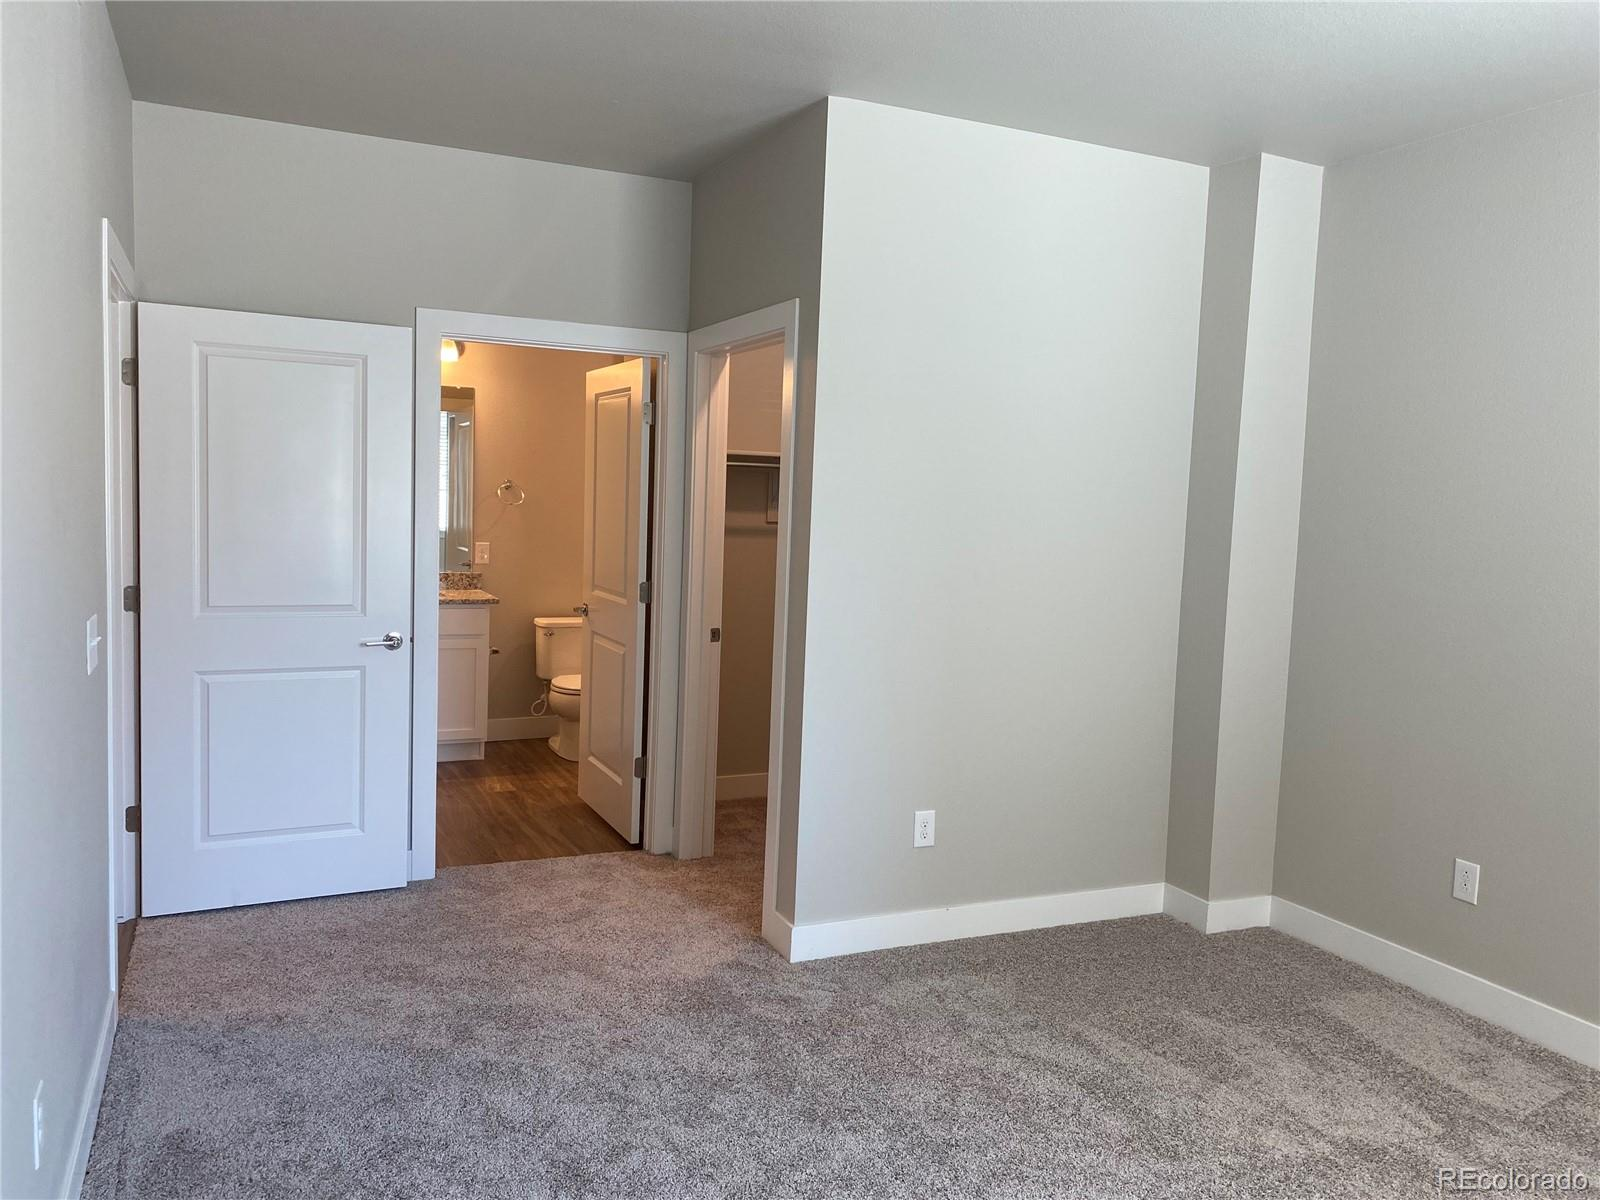 MLS# 4439296 - 9 - 14331 E Tennessee Avenue #101, Aurora, CO 80012